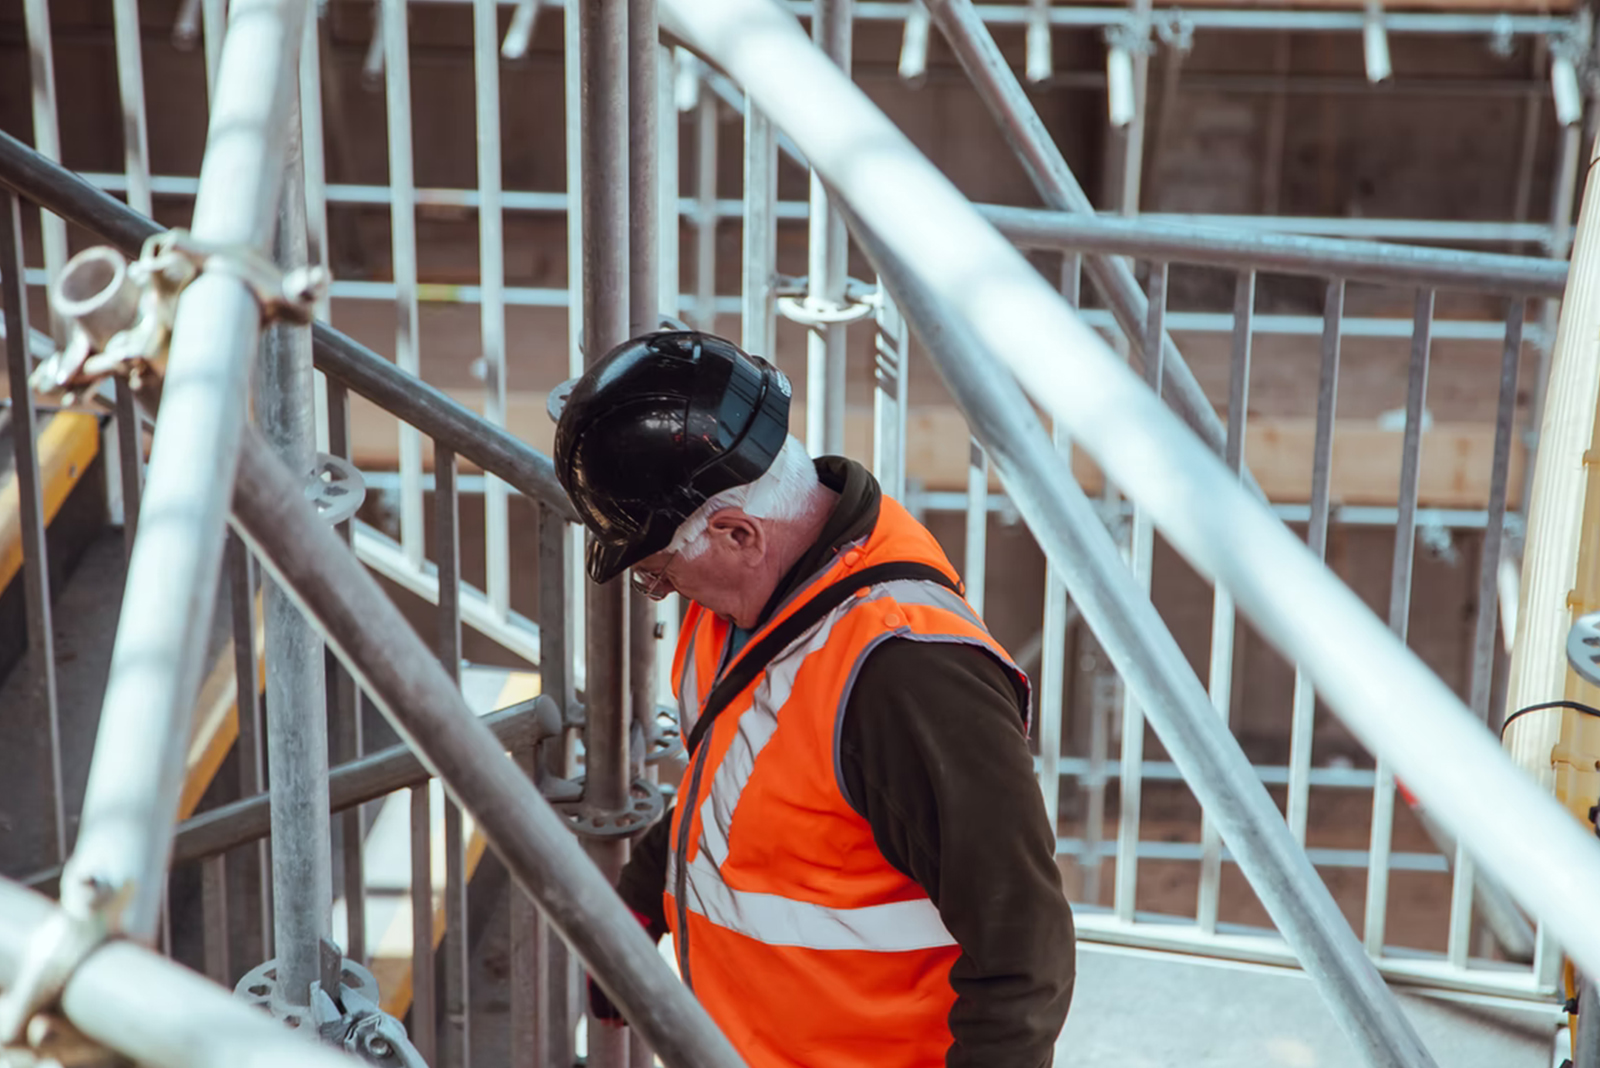 One in five construction employees have suffered from bullying in the last year, impacting their mental health